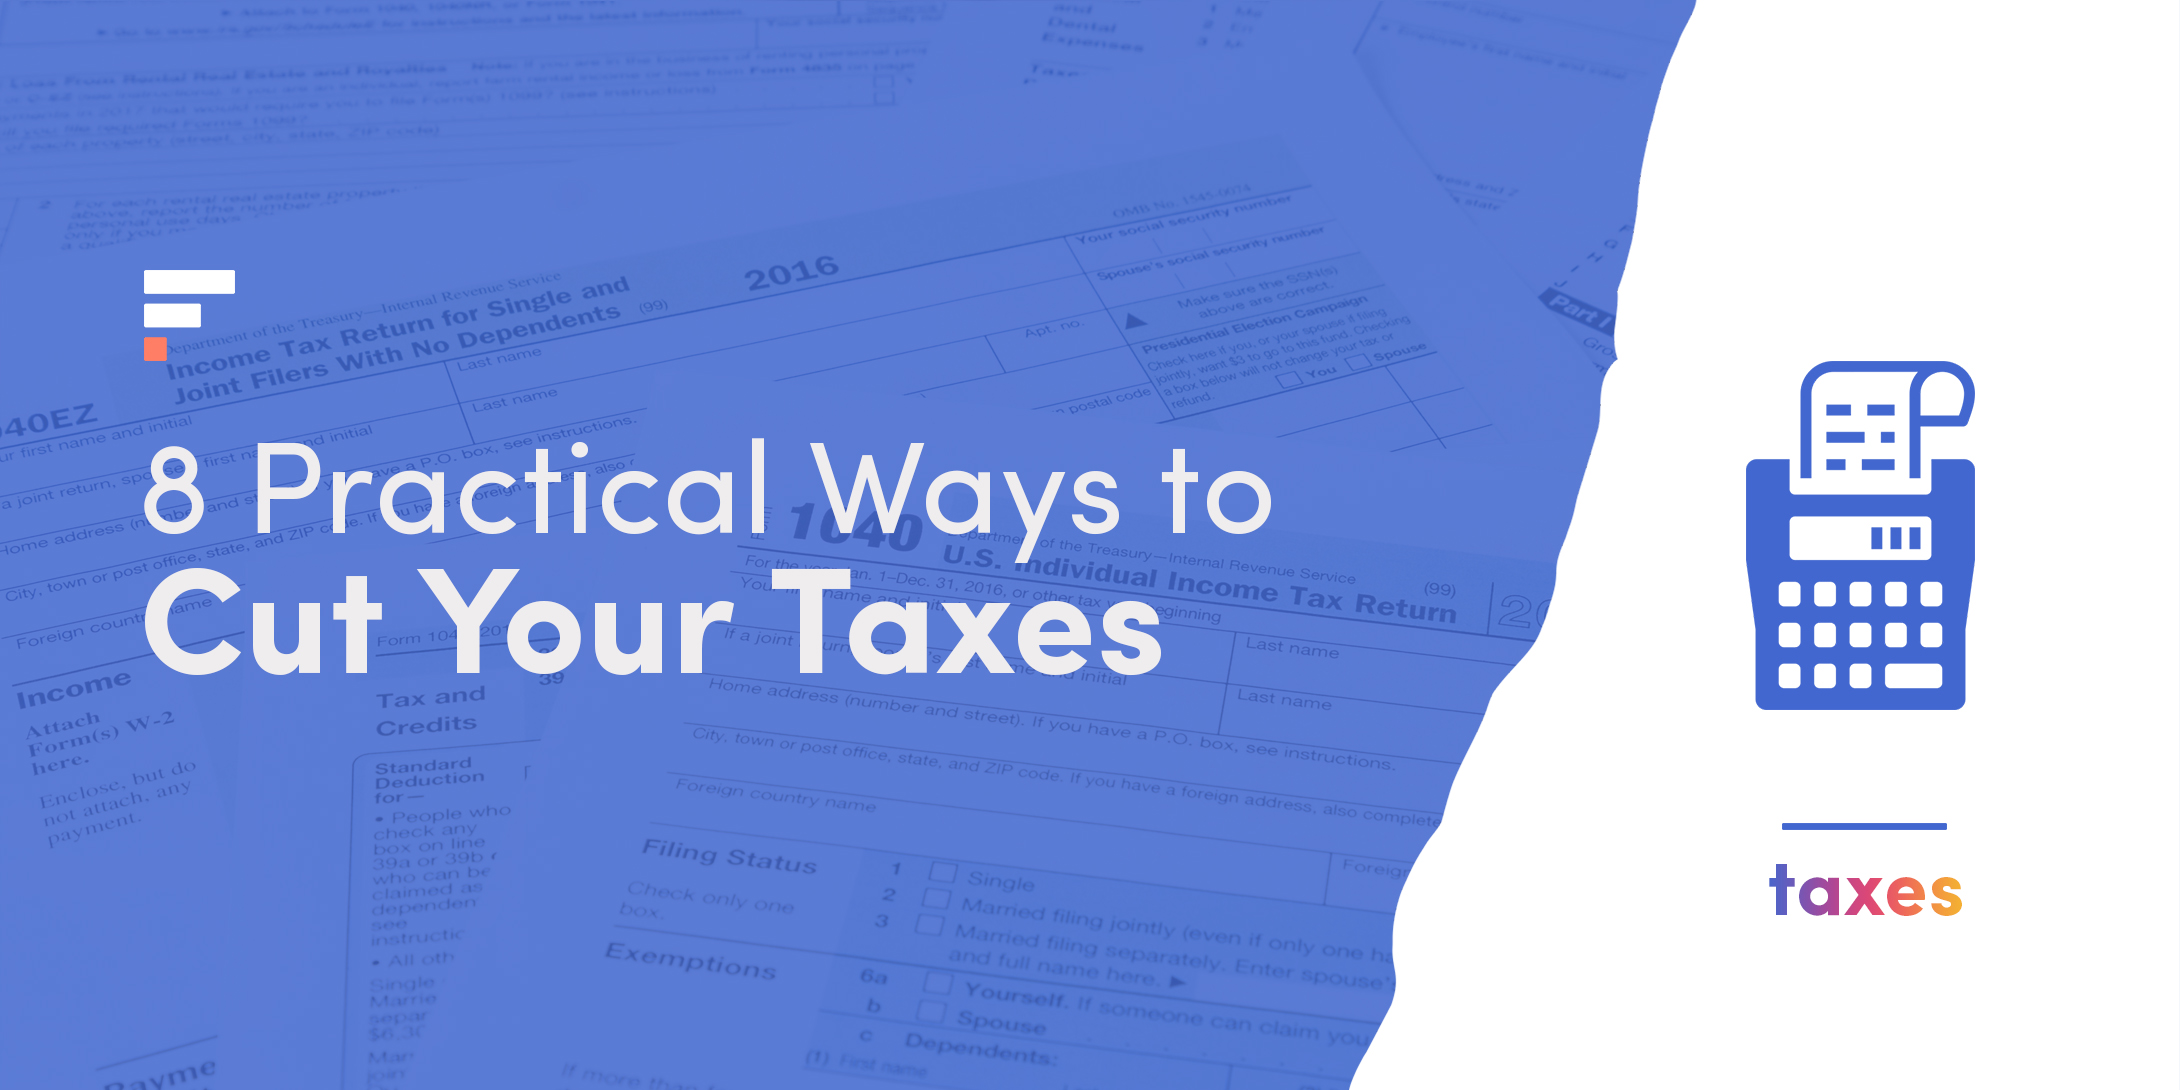 Ways to cut your taxes